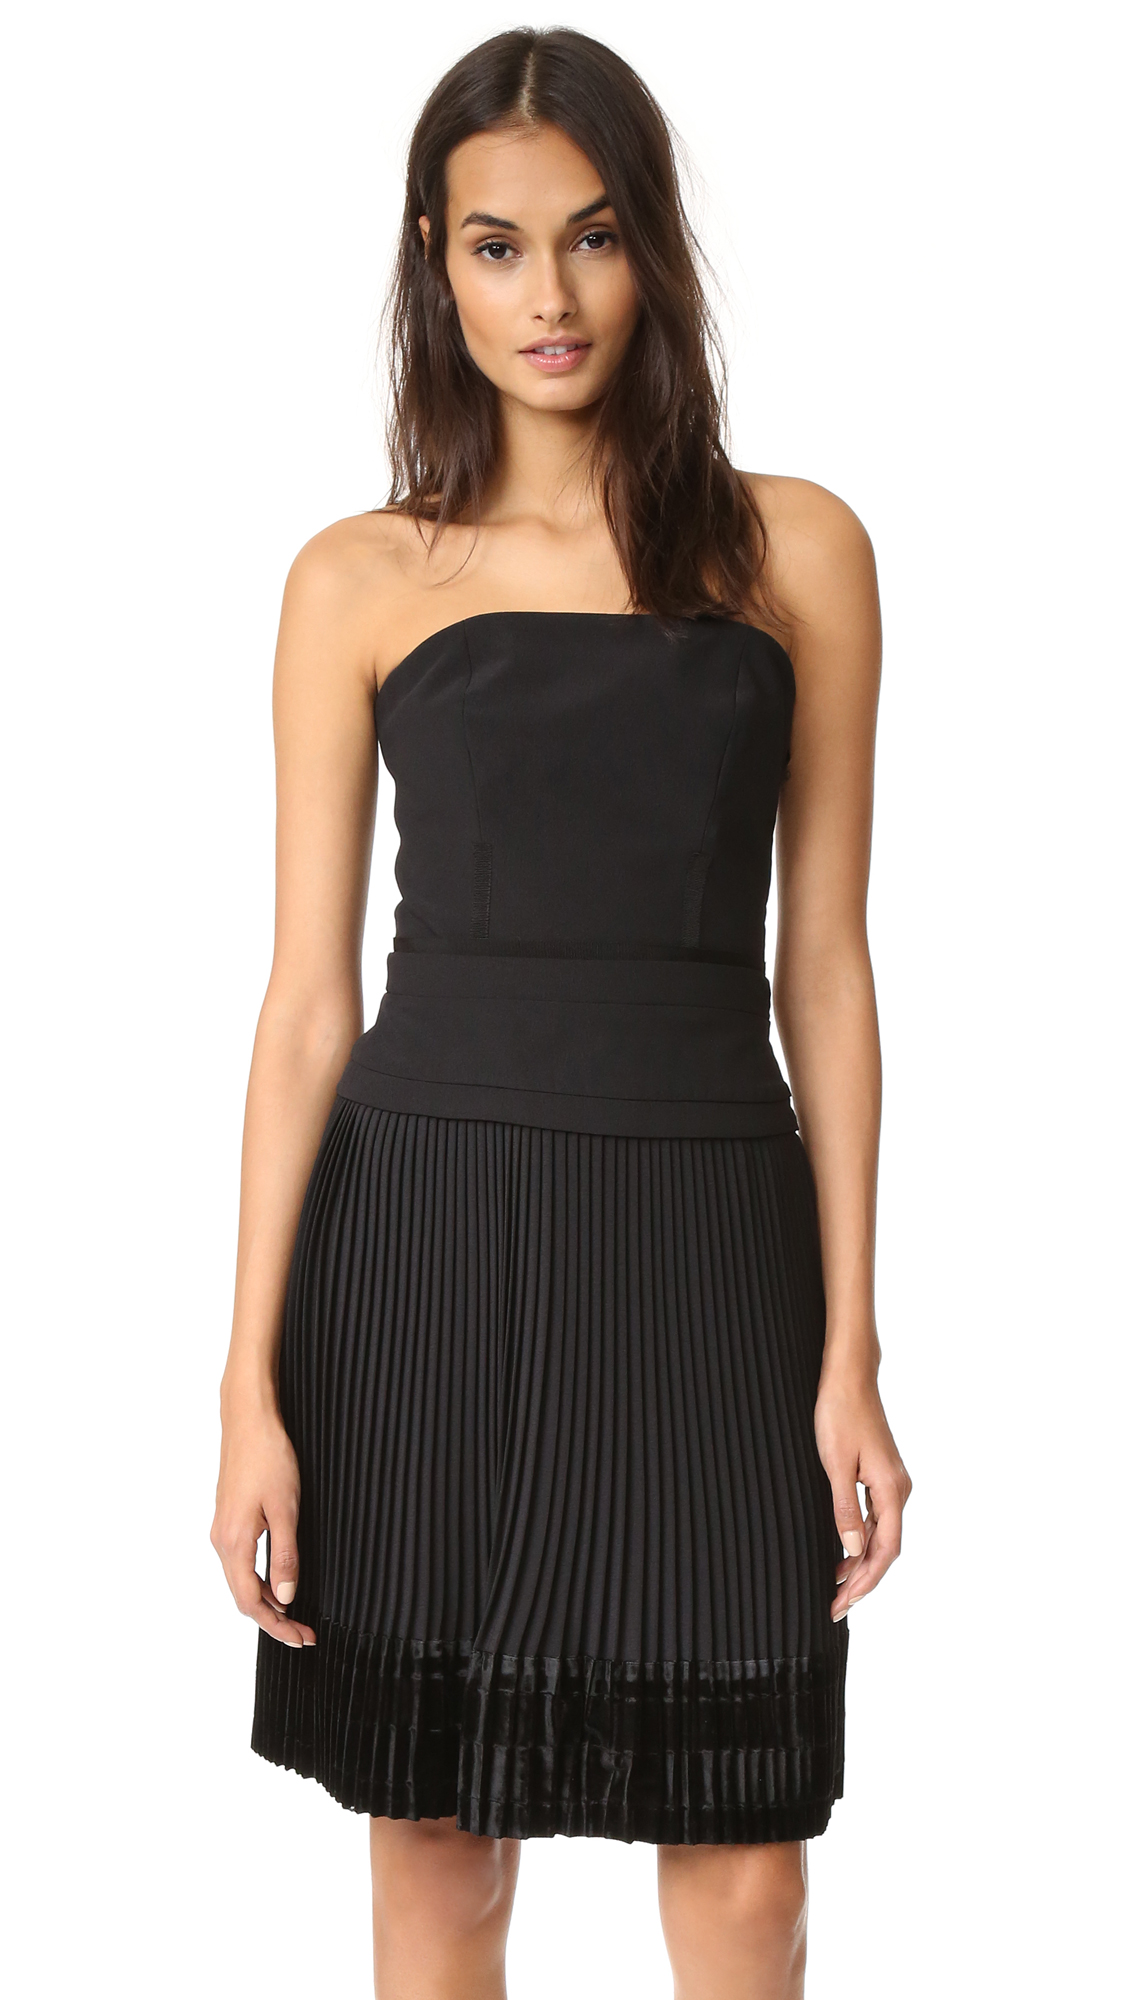 Carven Strapless Dress - Black